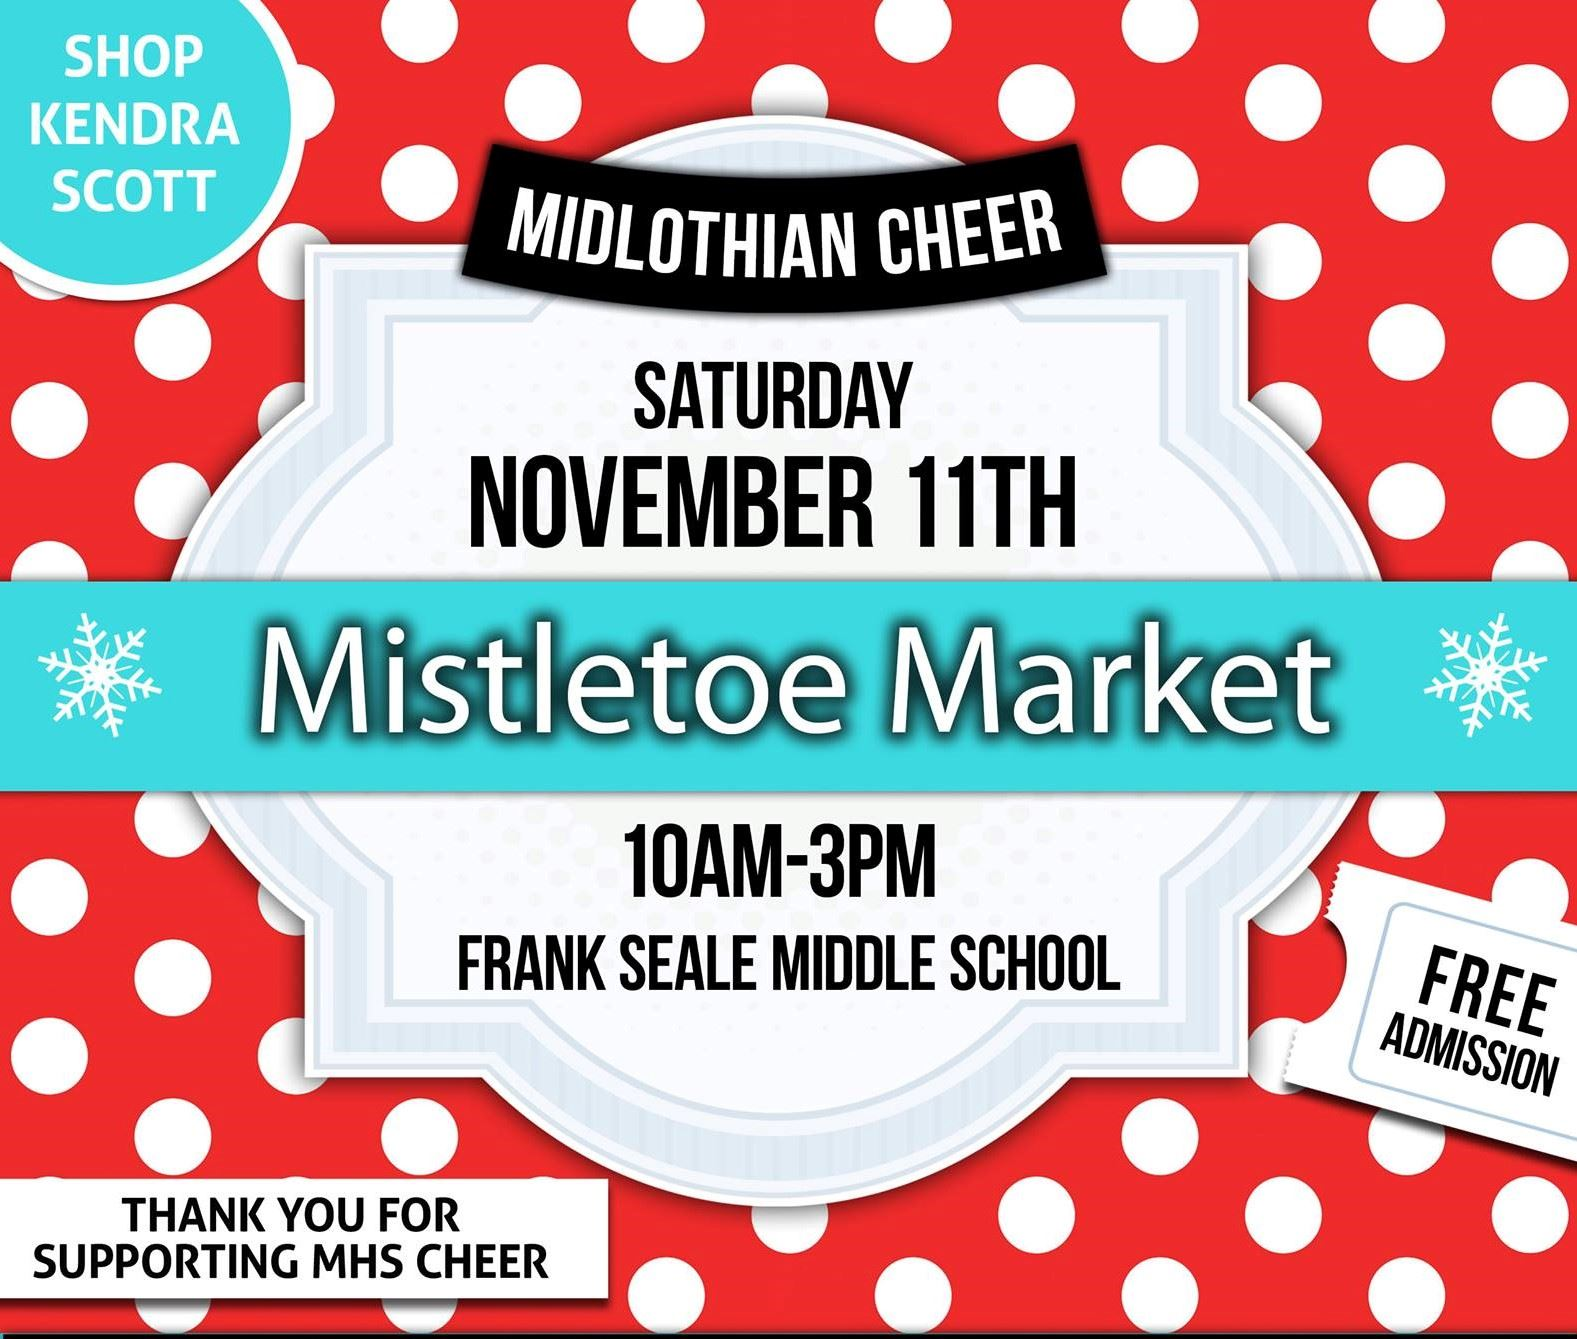 MHS Cheer Mistletoe Market